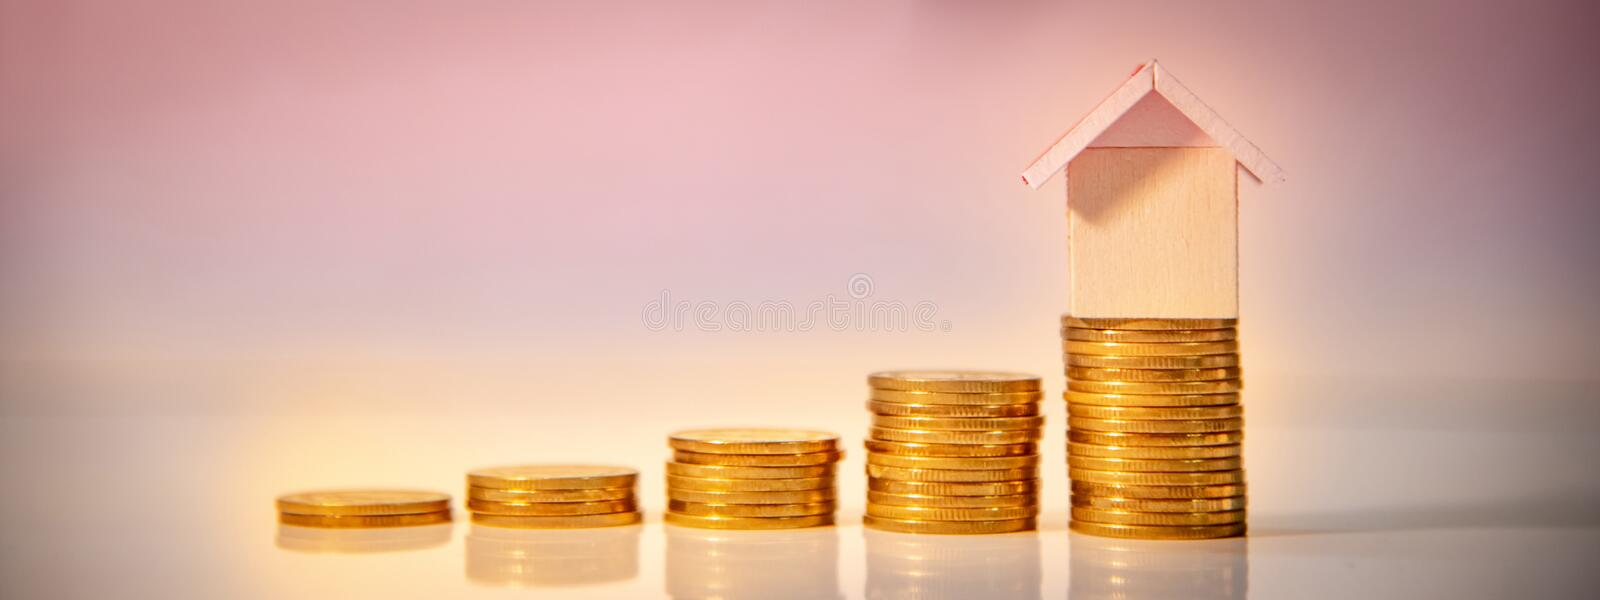 Real estate investment. Property ladder concept. Real estate investment or Home mortgage loan rate. Property ladder concept. Gold coins stack and house model on royalty free stock photos